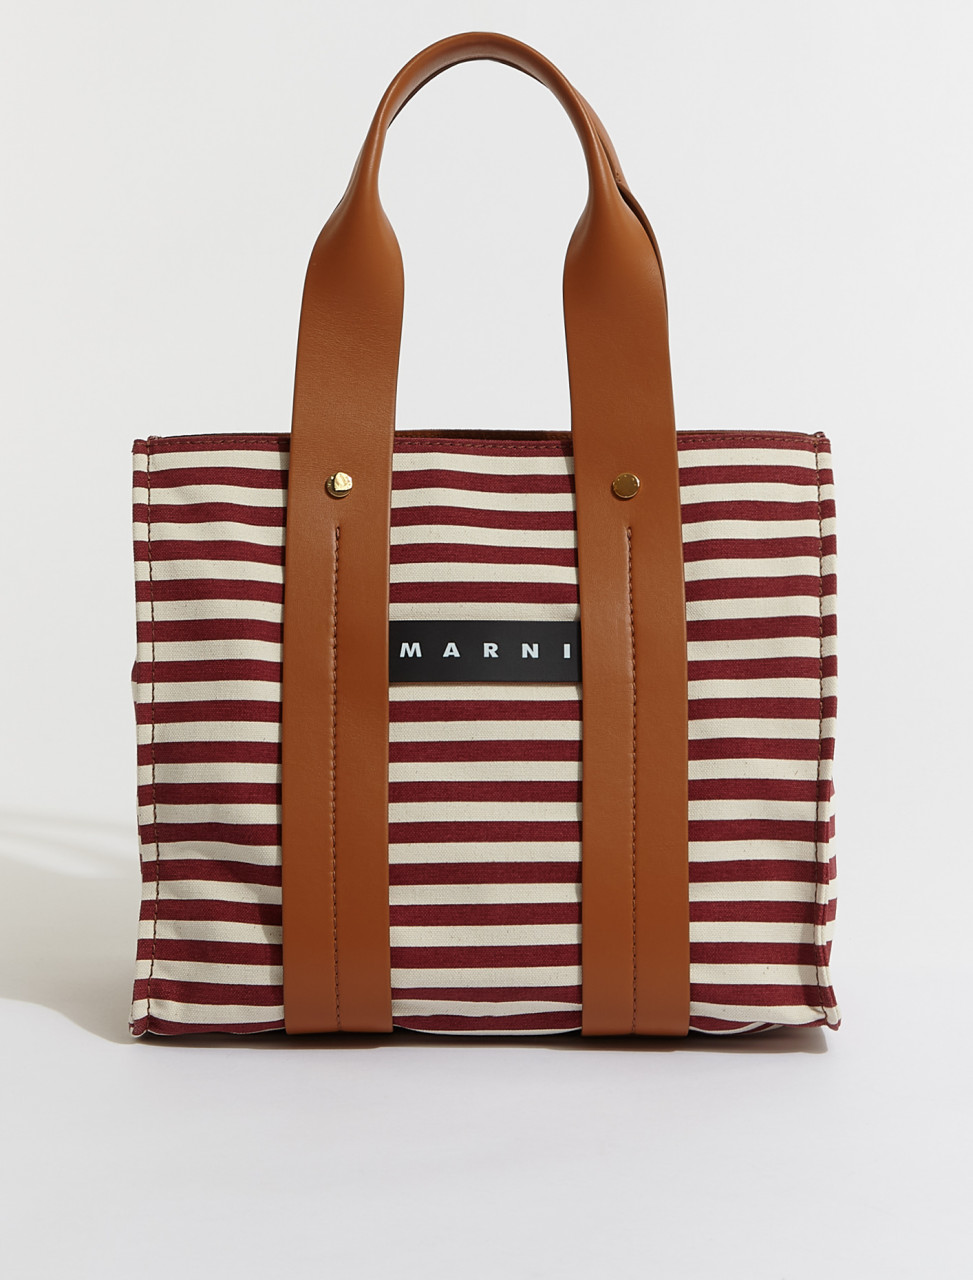 SHMP0048Q0-Z2N61 MARNI STRIPED SHOPPING BAG IN RED WHITE